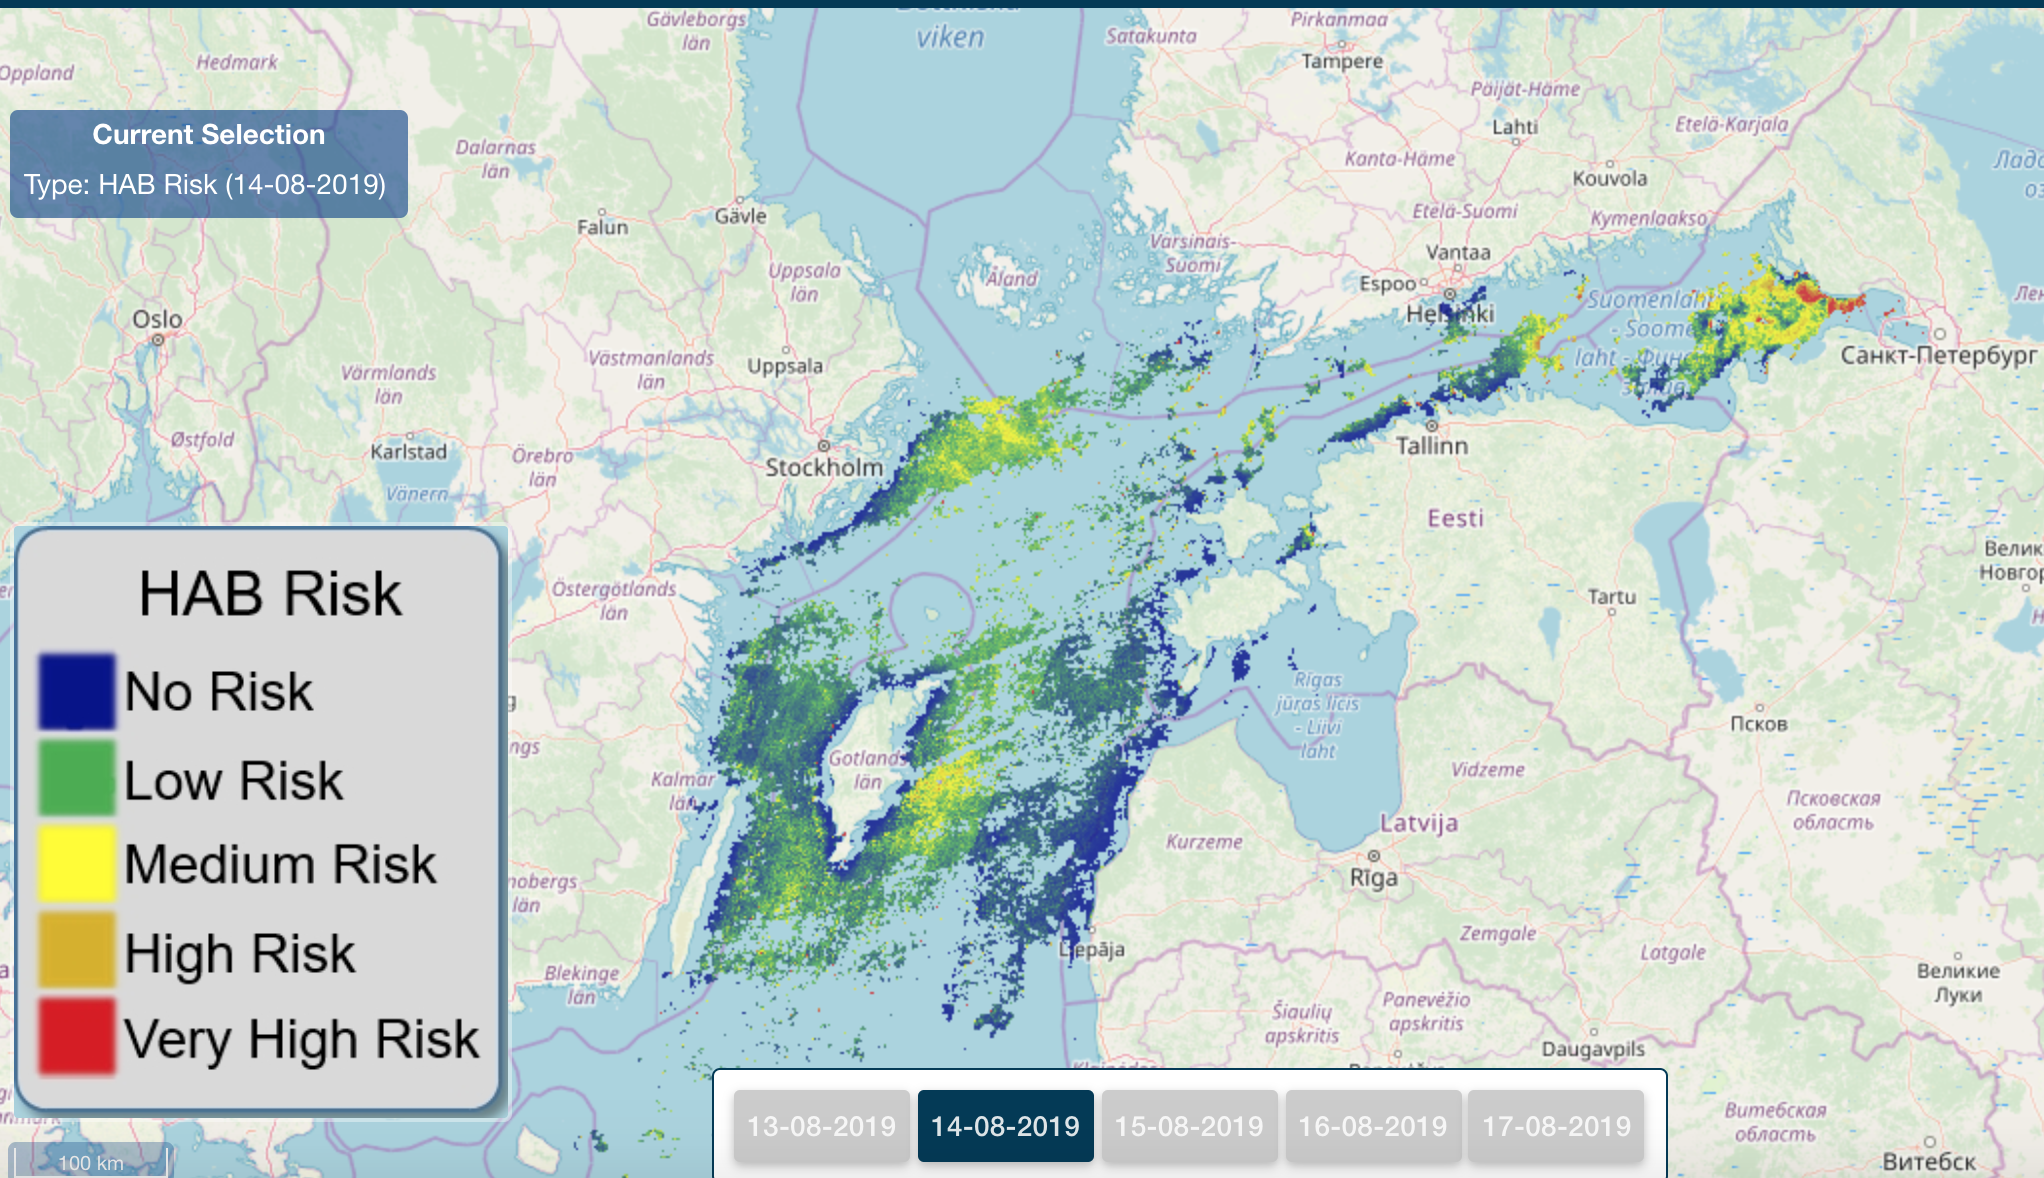 HAB Risk web portal to monitor the chlorophyll-a concentration in Baltic Sea